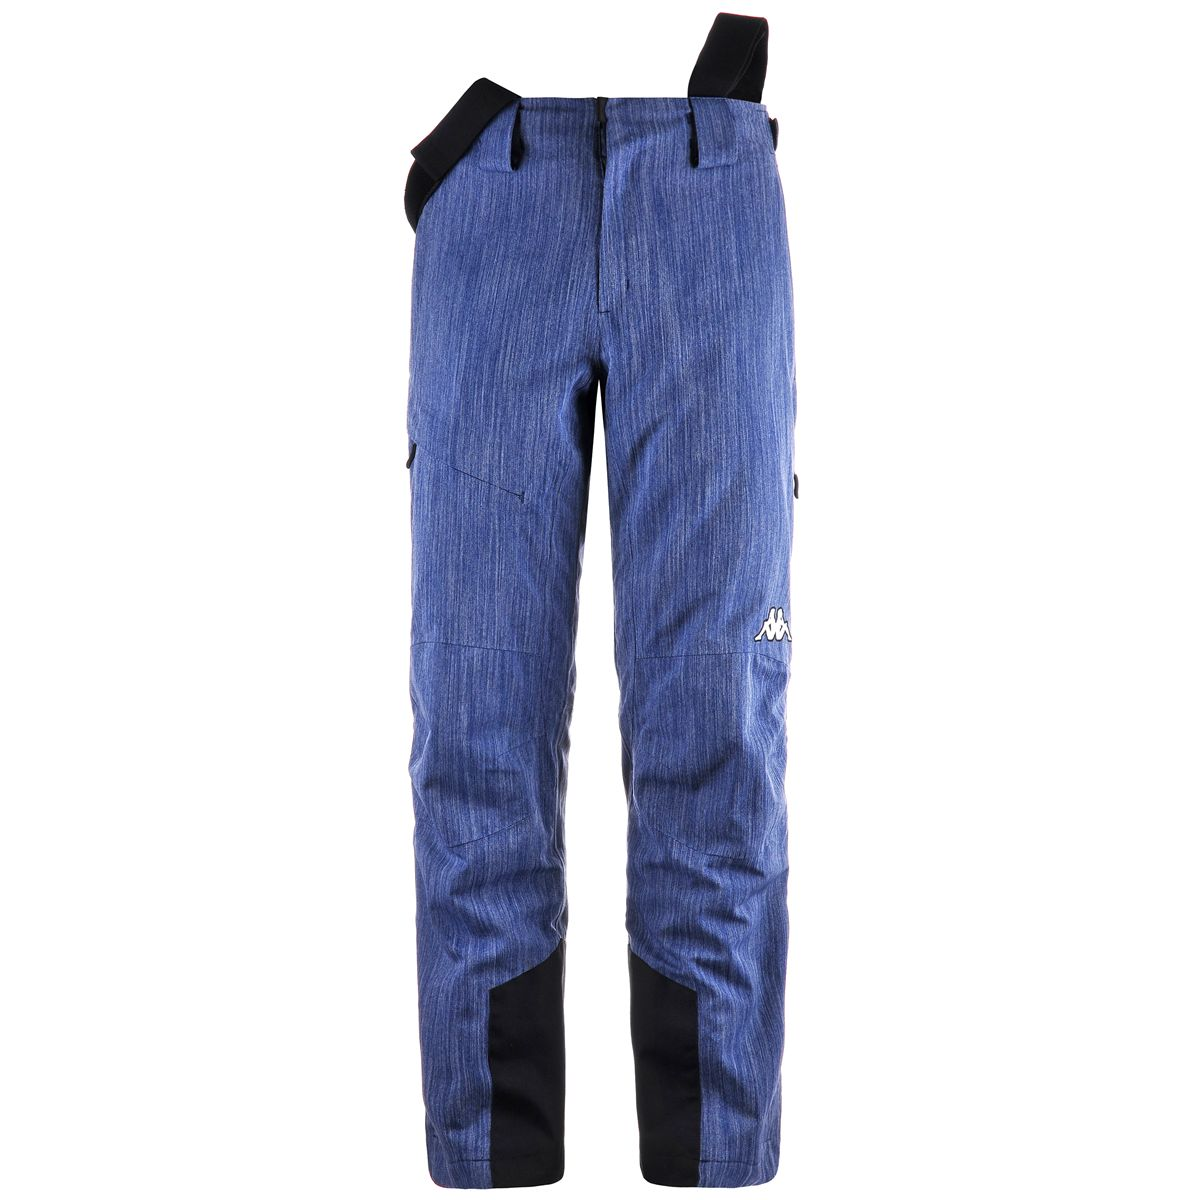 Kappa Pants 6CENTO 622A DENIM Man Sport Trousers